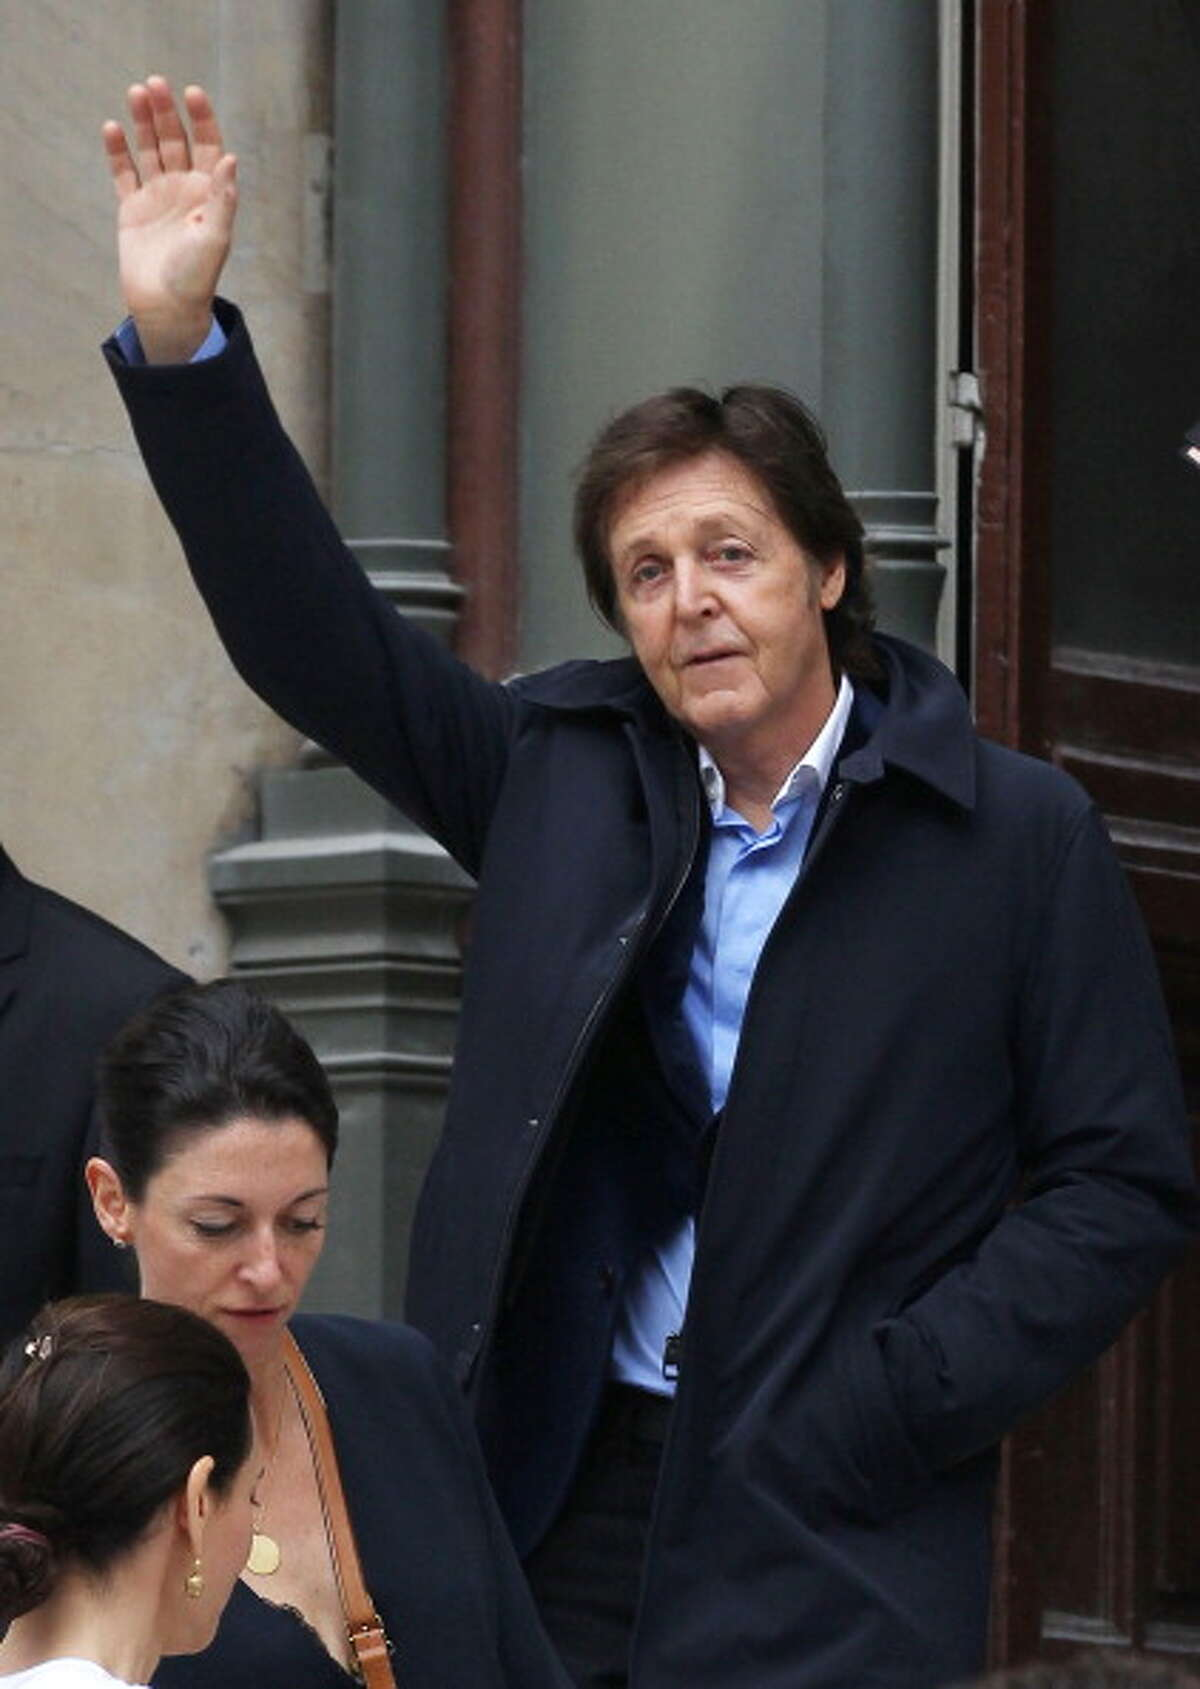 2013: Paul McCartney in Paris, France.